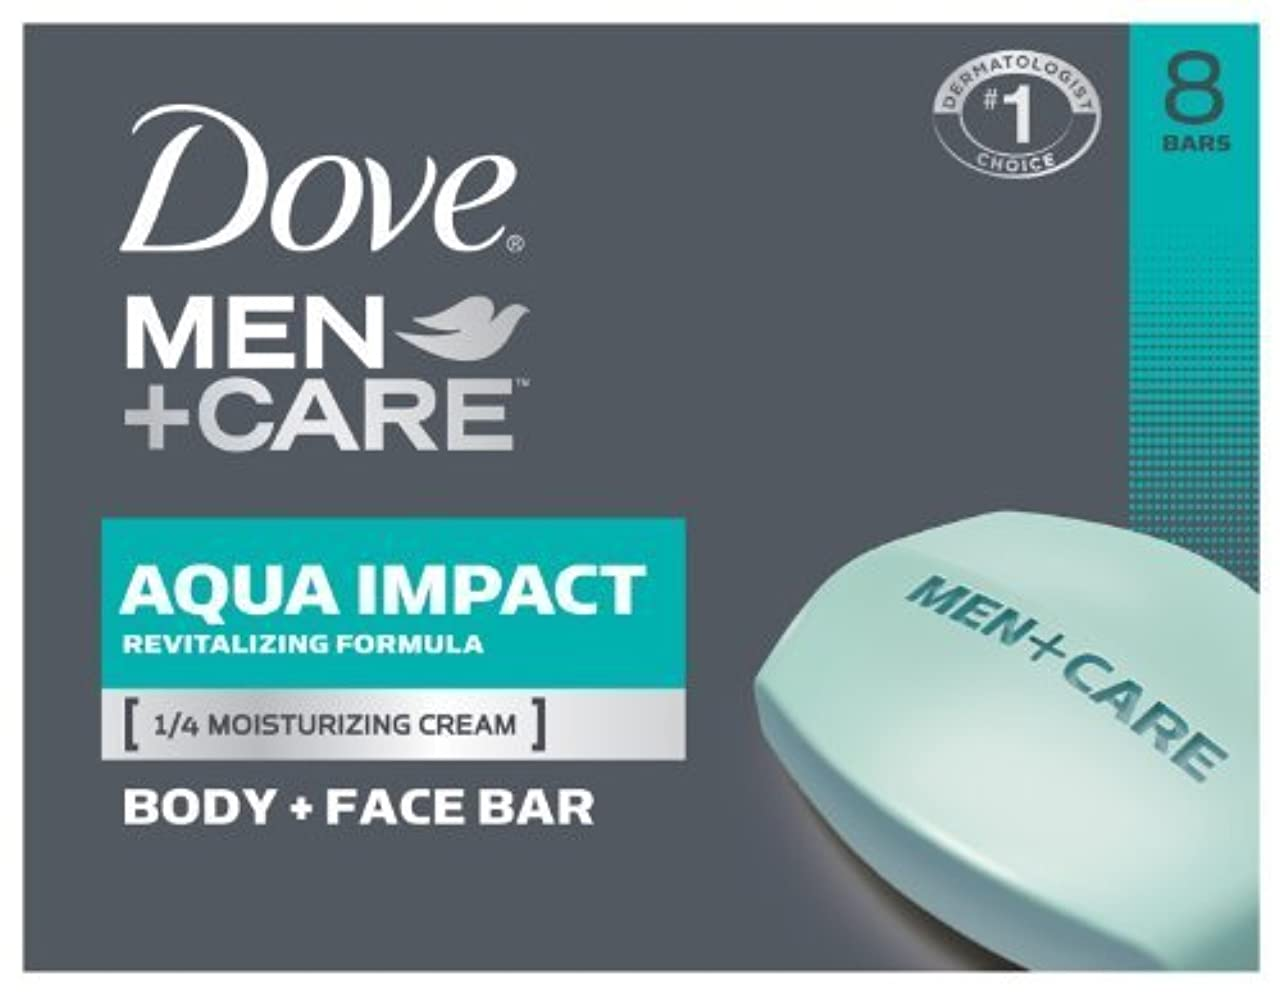 Dove Men+Care Body and Face Bar, Aqua Impact 4 oz, 8 Bar by Dove [並行輸入品]